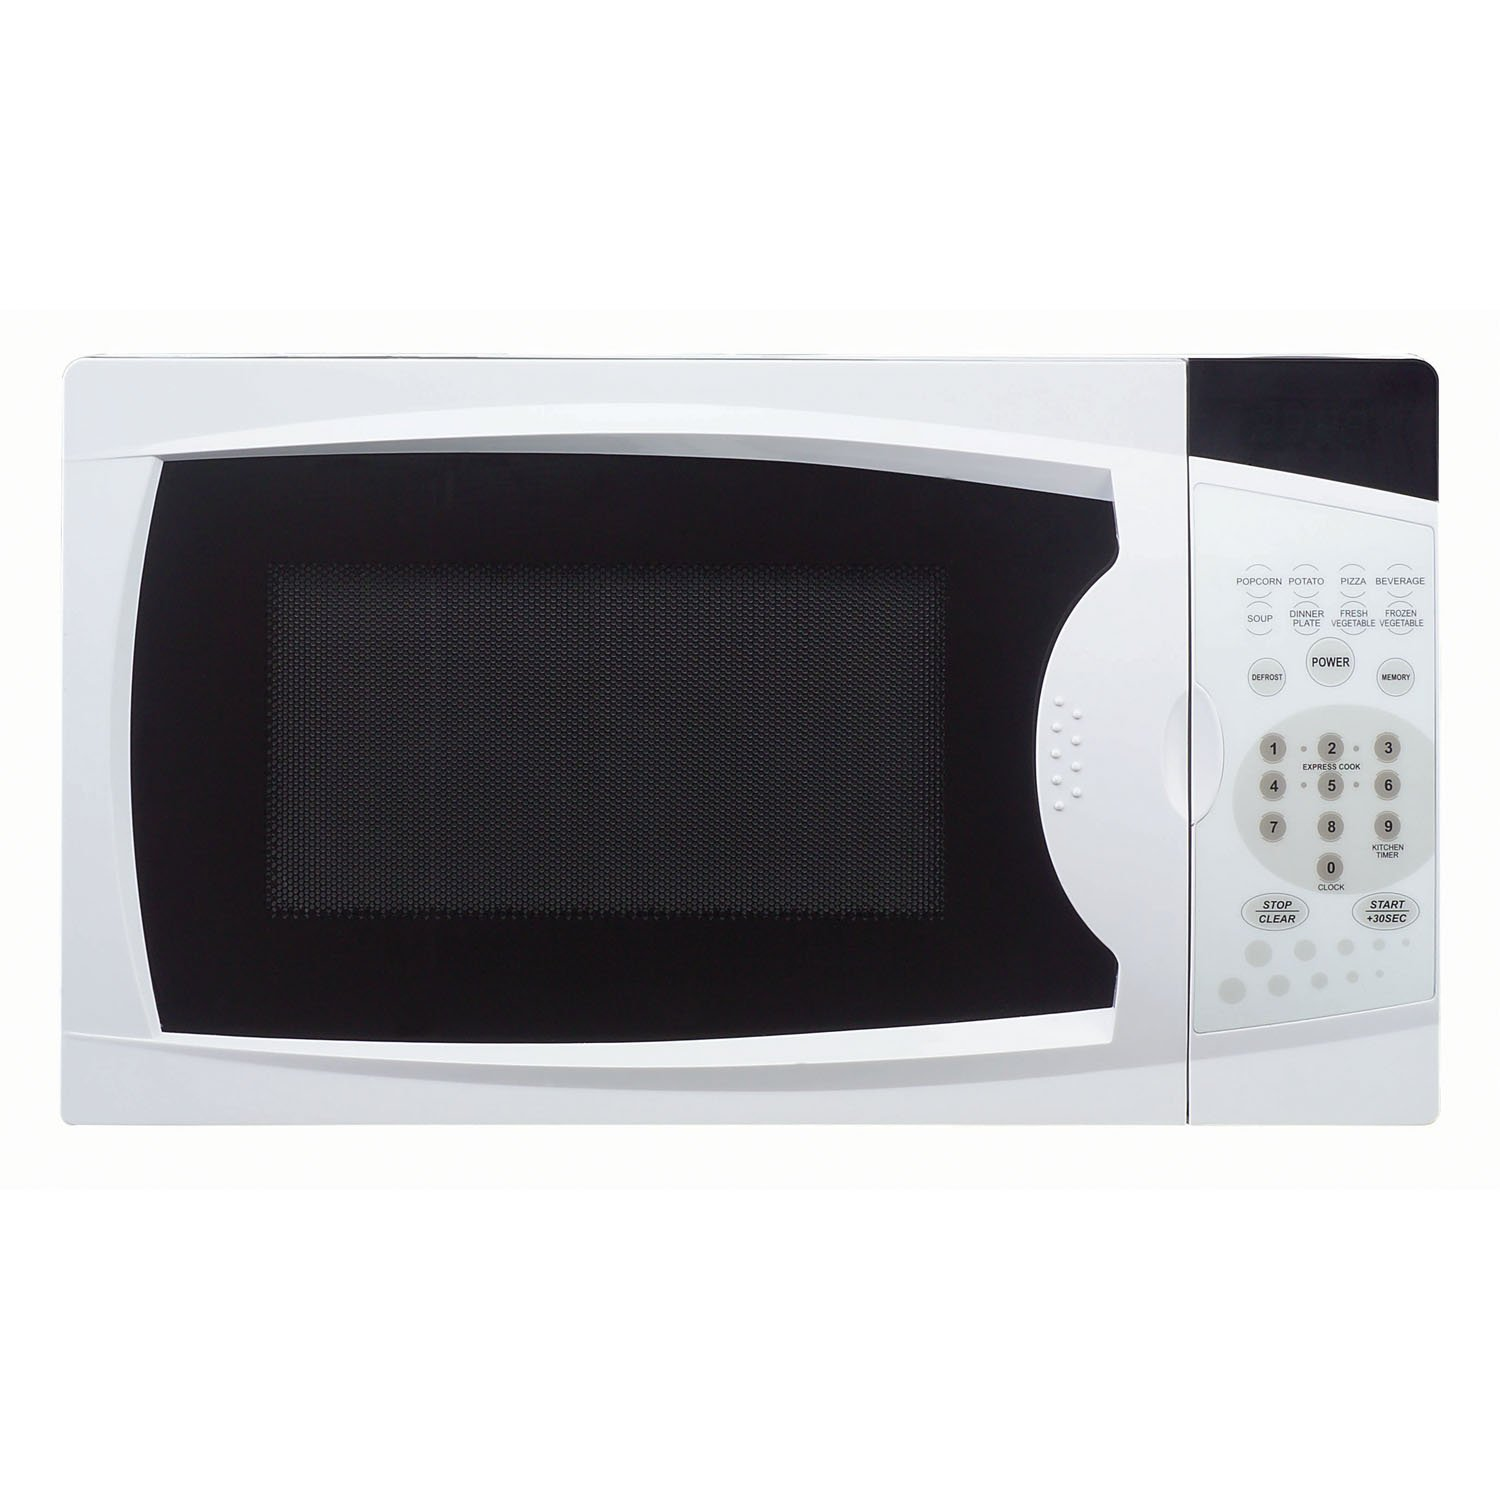 Magic Chef MCM770W 0.7 Cu. Ft. 700W Oven in White Countertop Microwave 7